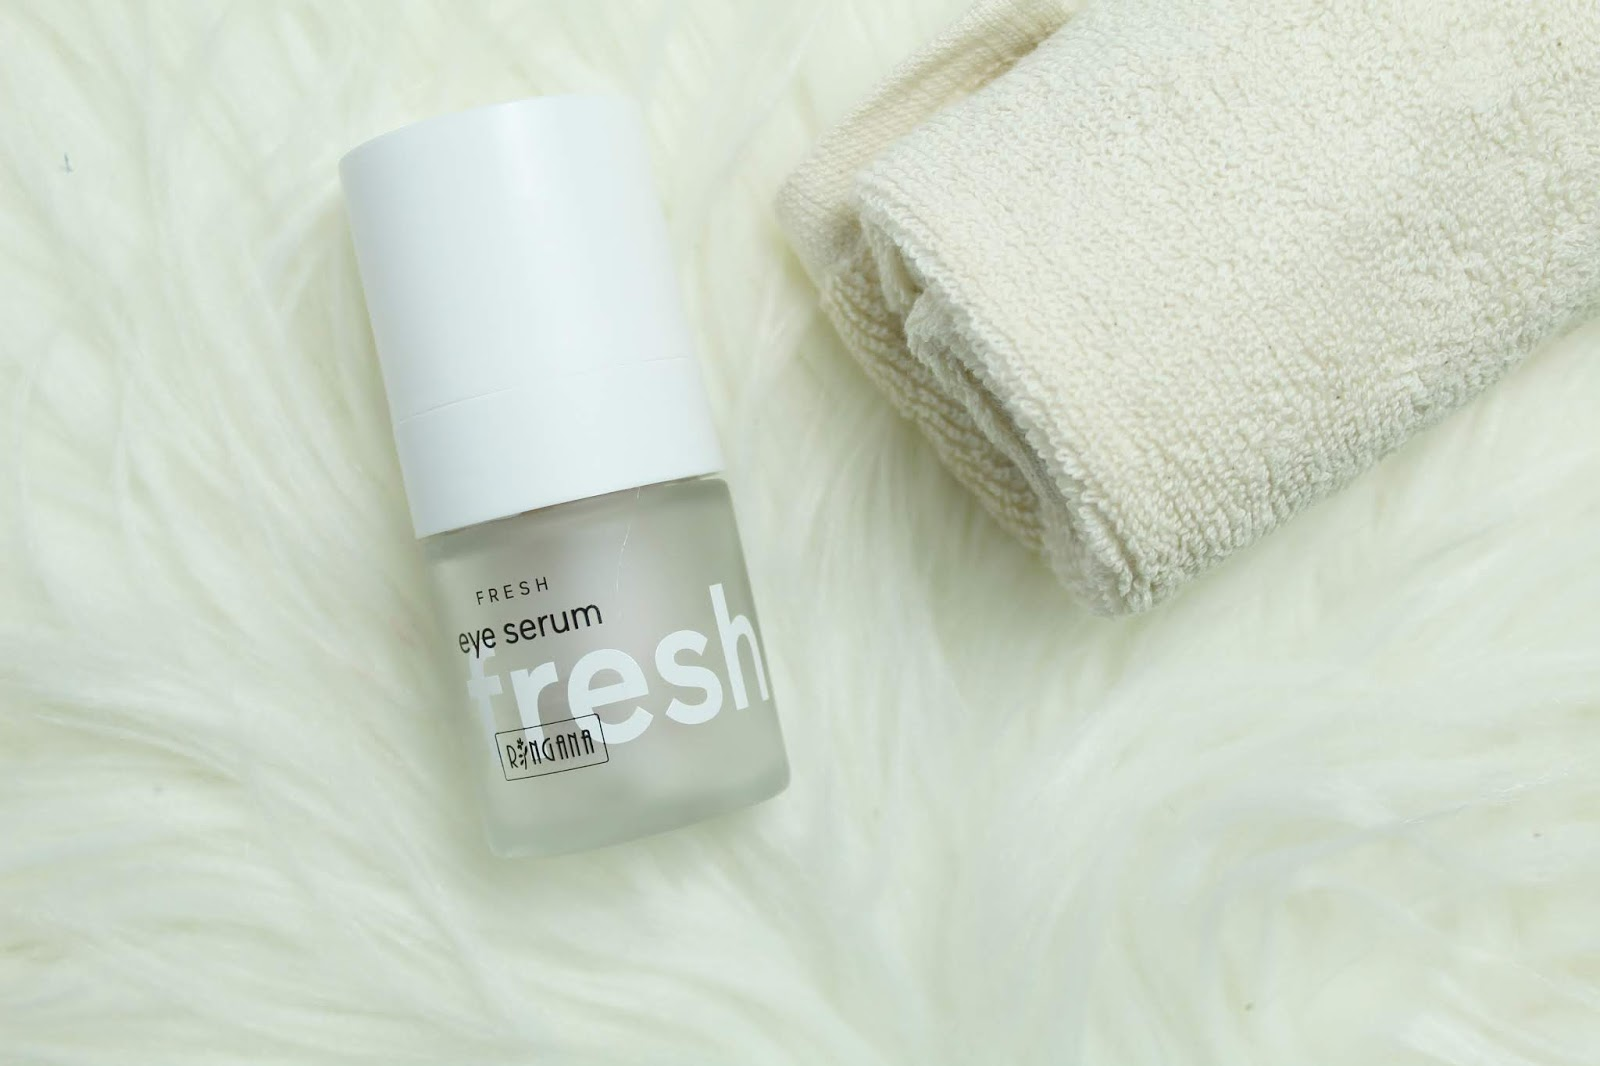 ringana fresh eye serum